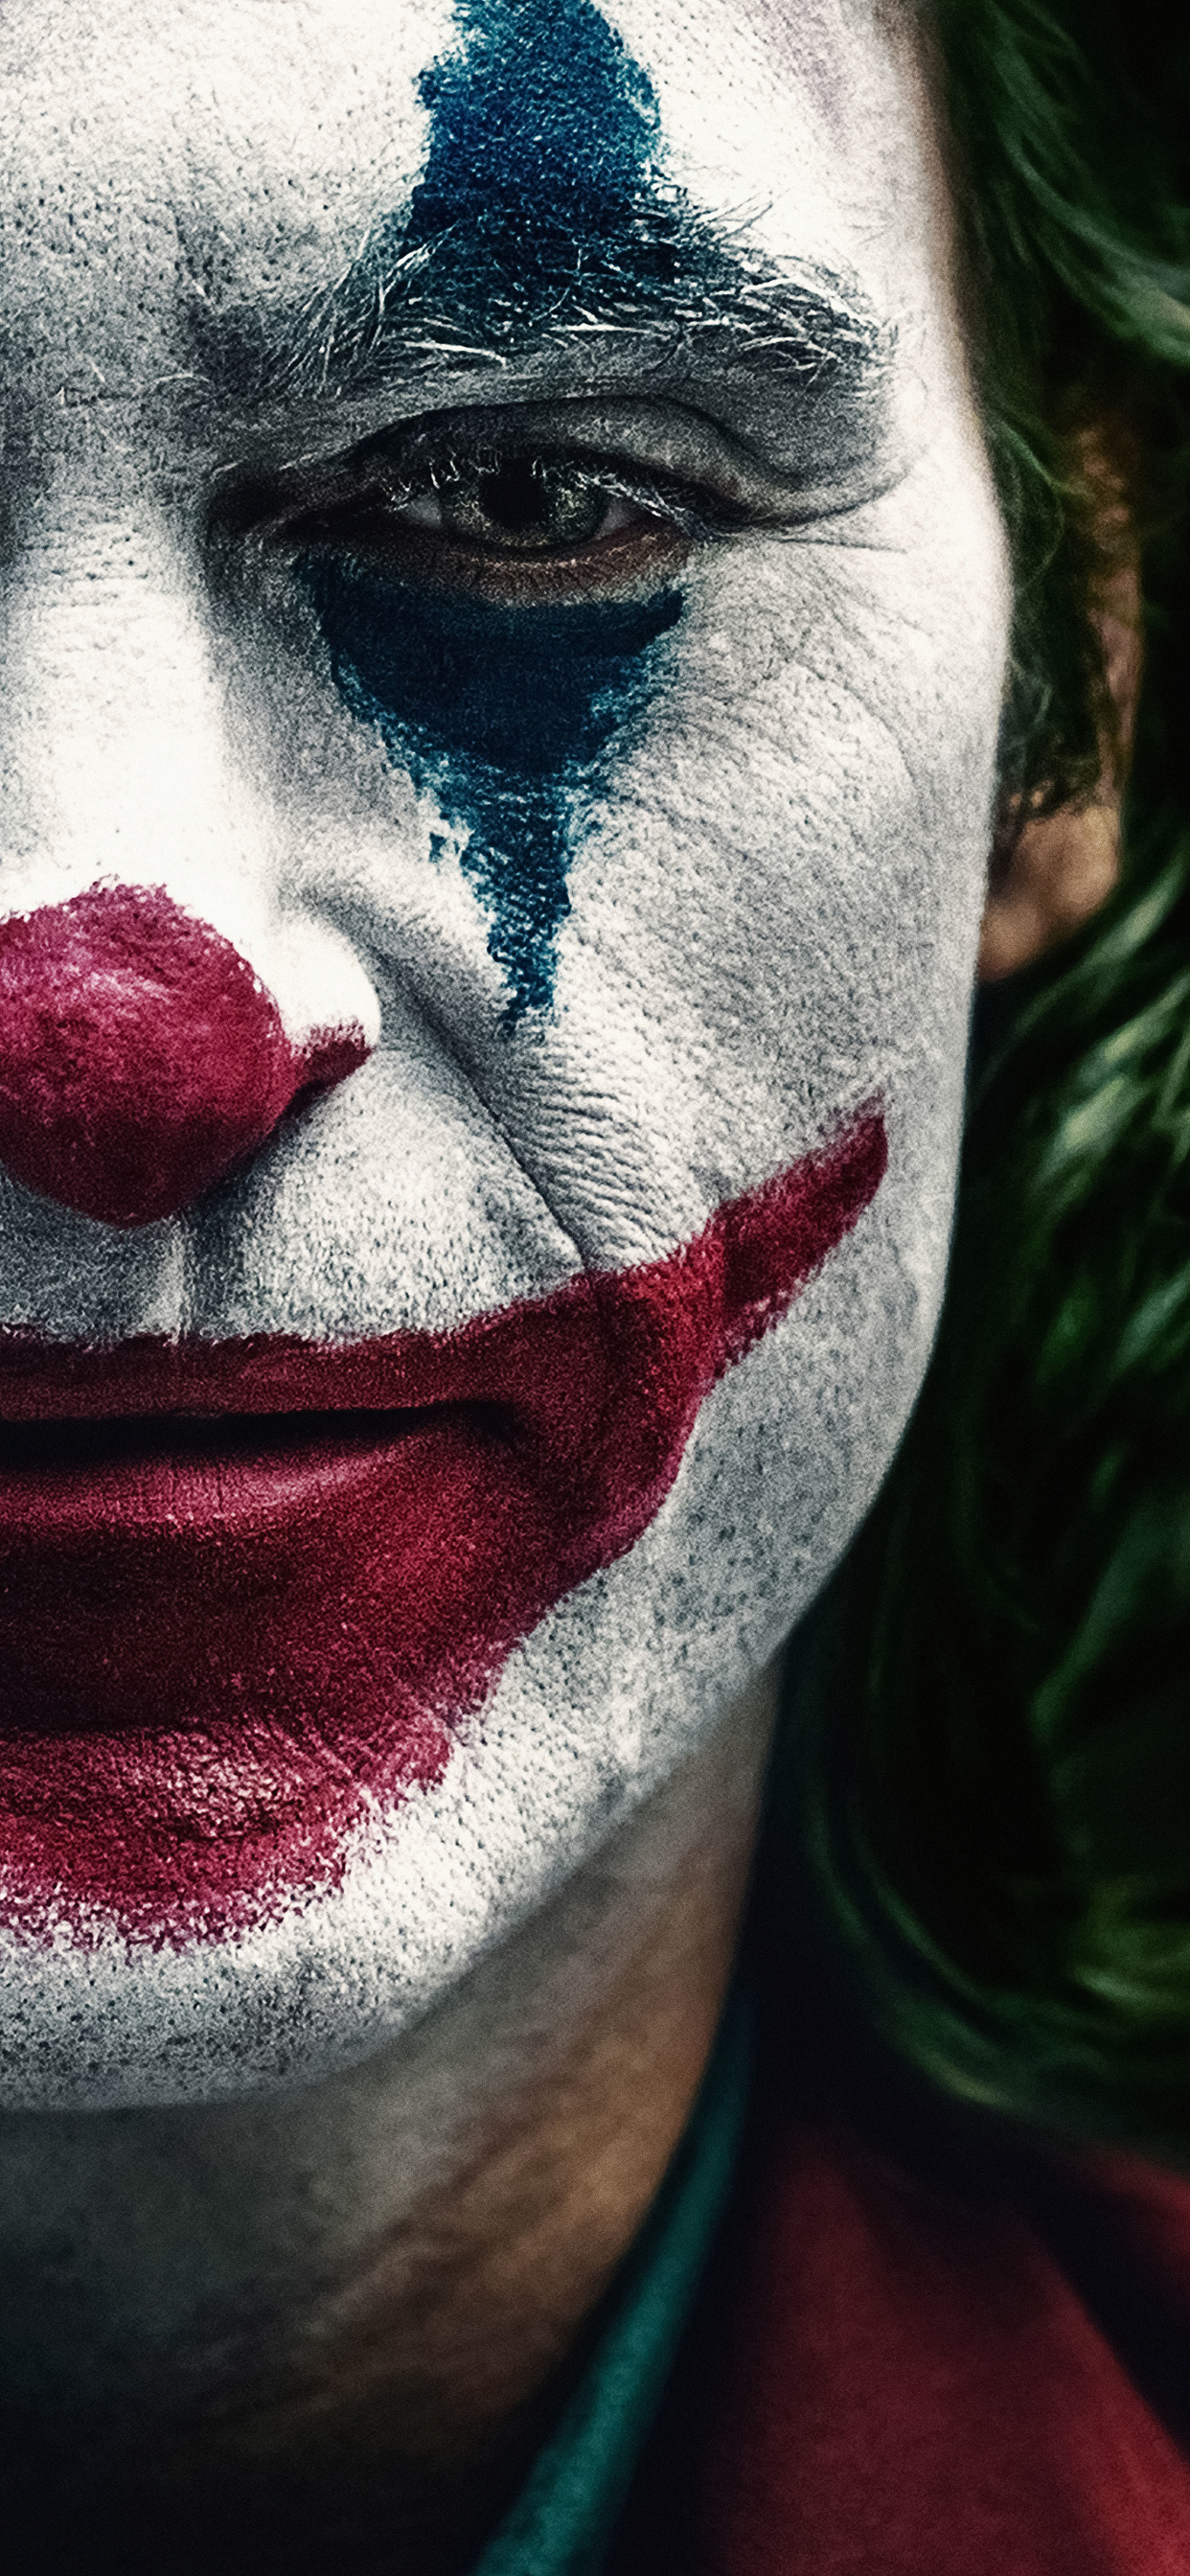 1242x2688 Joker 2019 Iphone Xs Max Wallpaper Hd Movies 4k Wallpapers Images Photos And Background